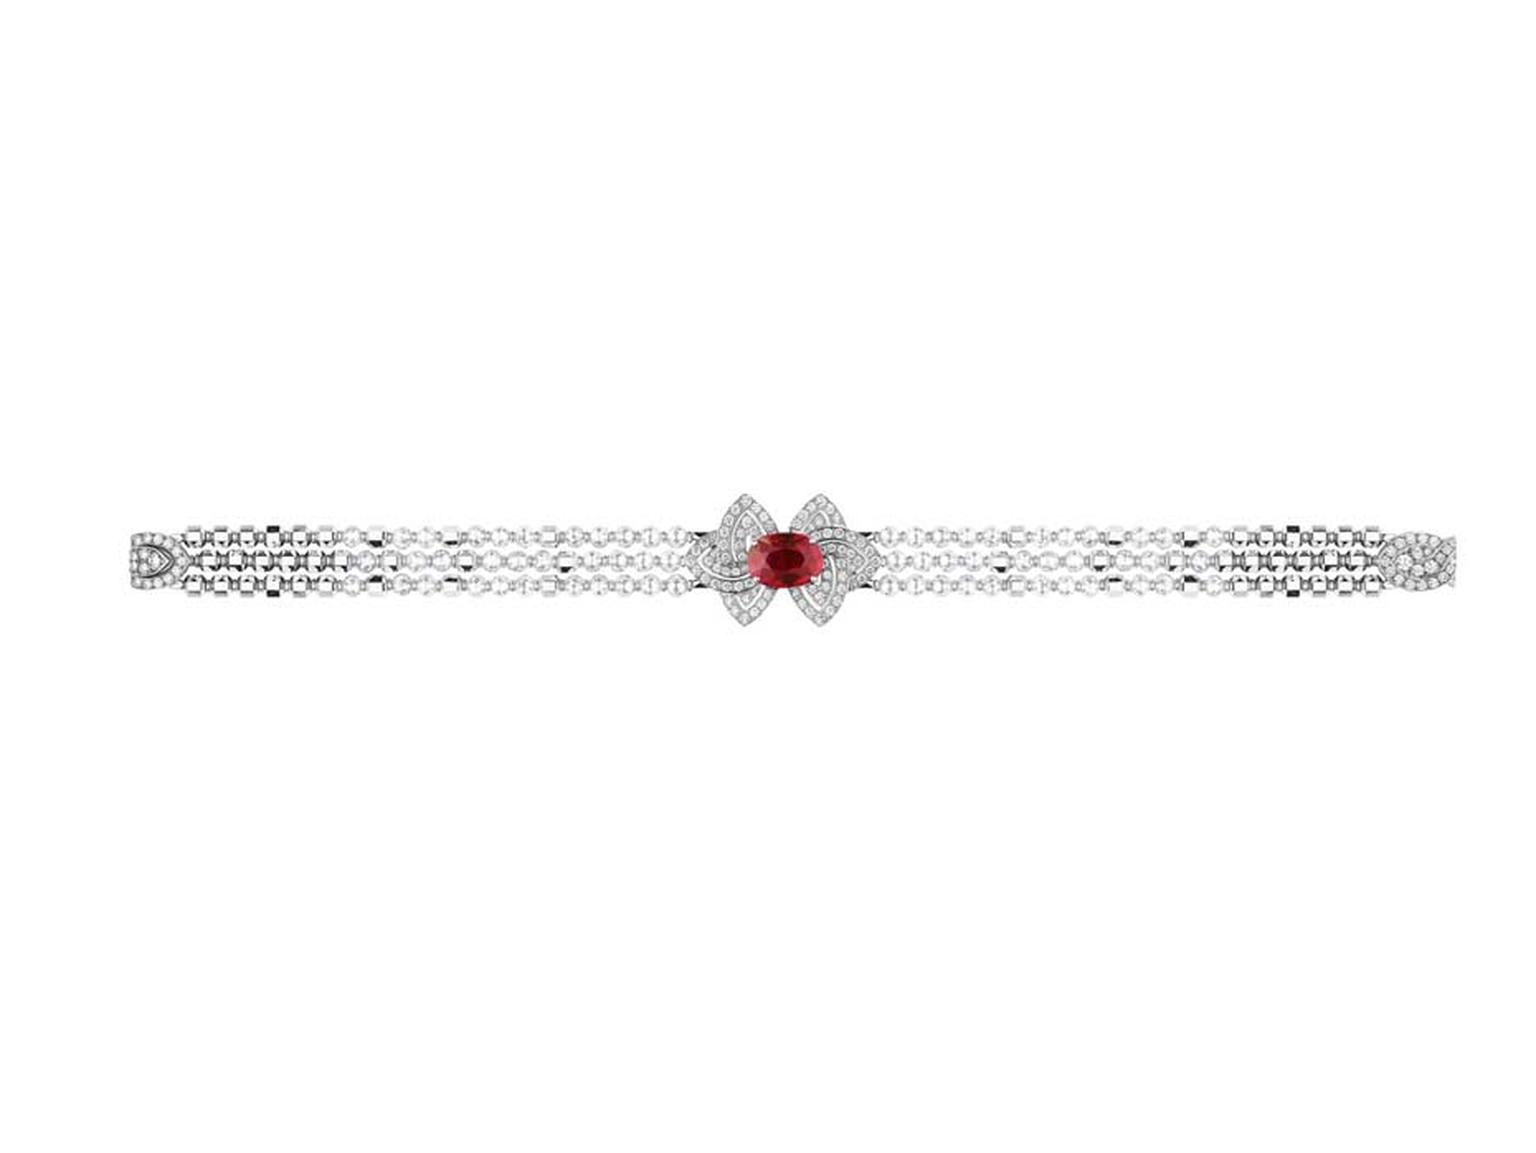 Louis Vuitton bracelet set with an African ruby flanked by diamond-shaped petals.